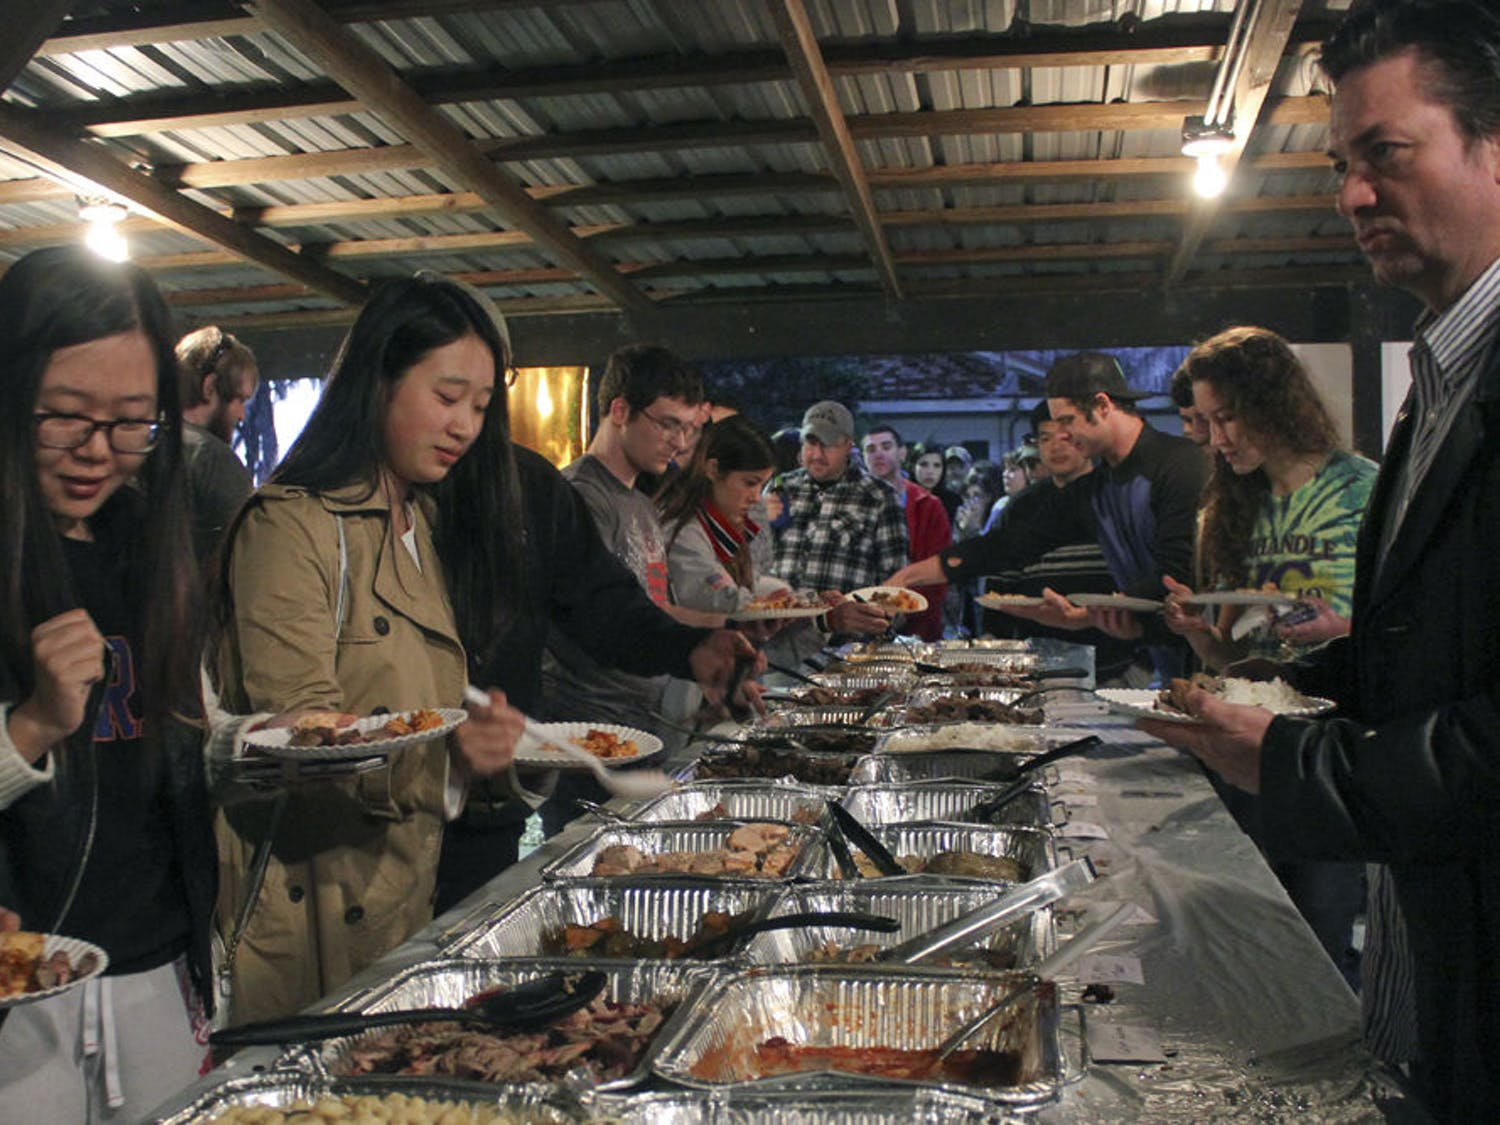 Fan Zhang (left), 24, and Xuesong Ding, 21, both UF urban and regional planning students, and Darren Lane, 44, fill plates from a buffet including buffalo, python and elk meat Saturday during the Beast Feast, a fundraising dinner held by the UF Wildlife society at Whitehurst Lodge in Archer. For video coverage of the event, visit www.alligator.org.